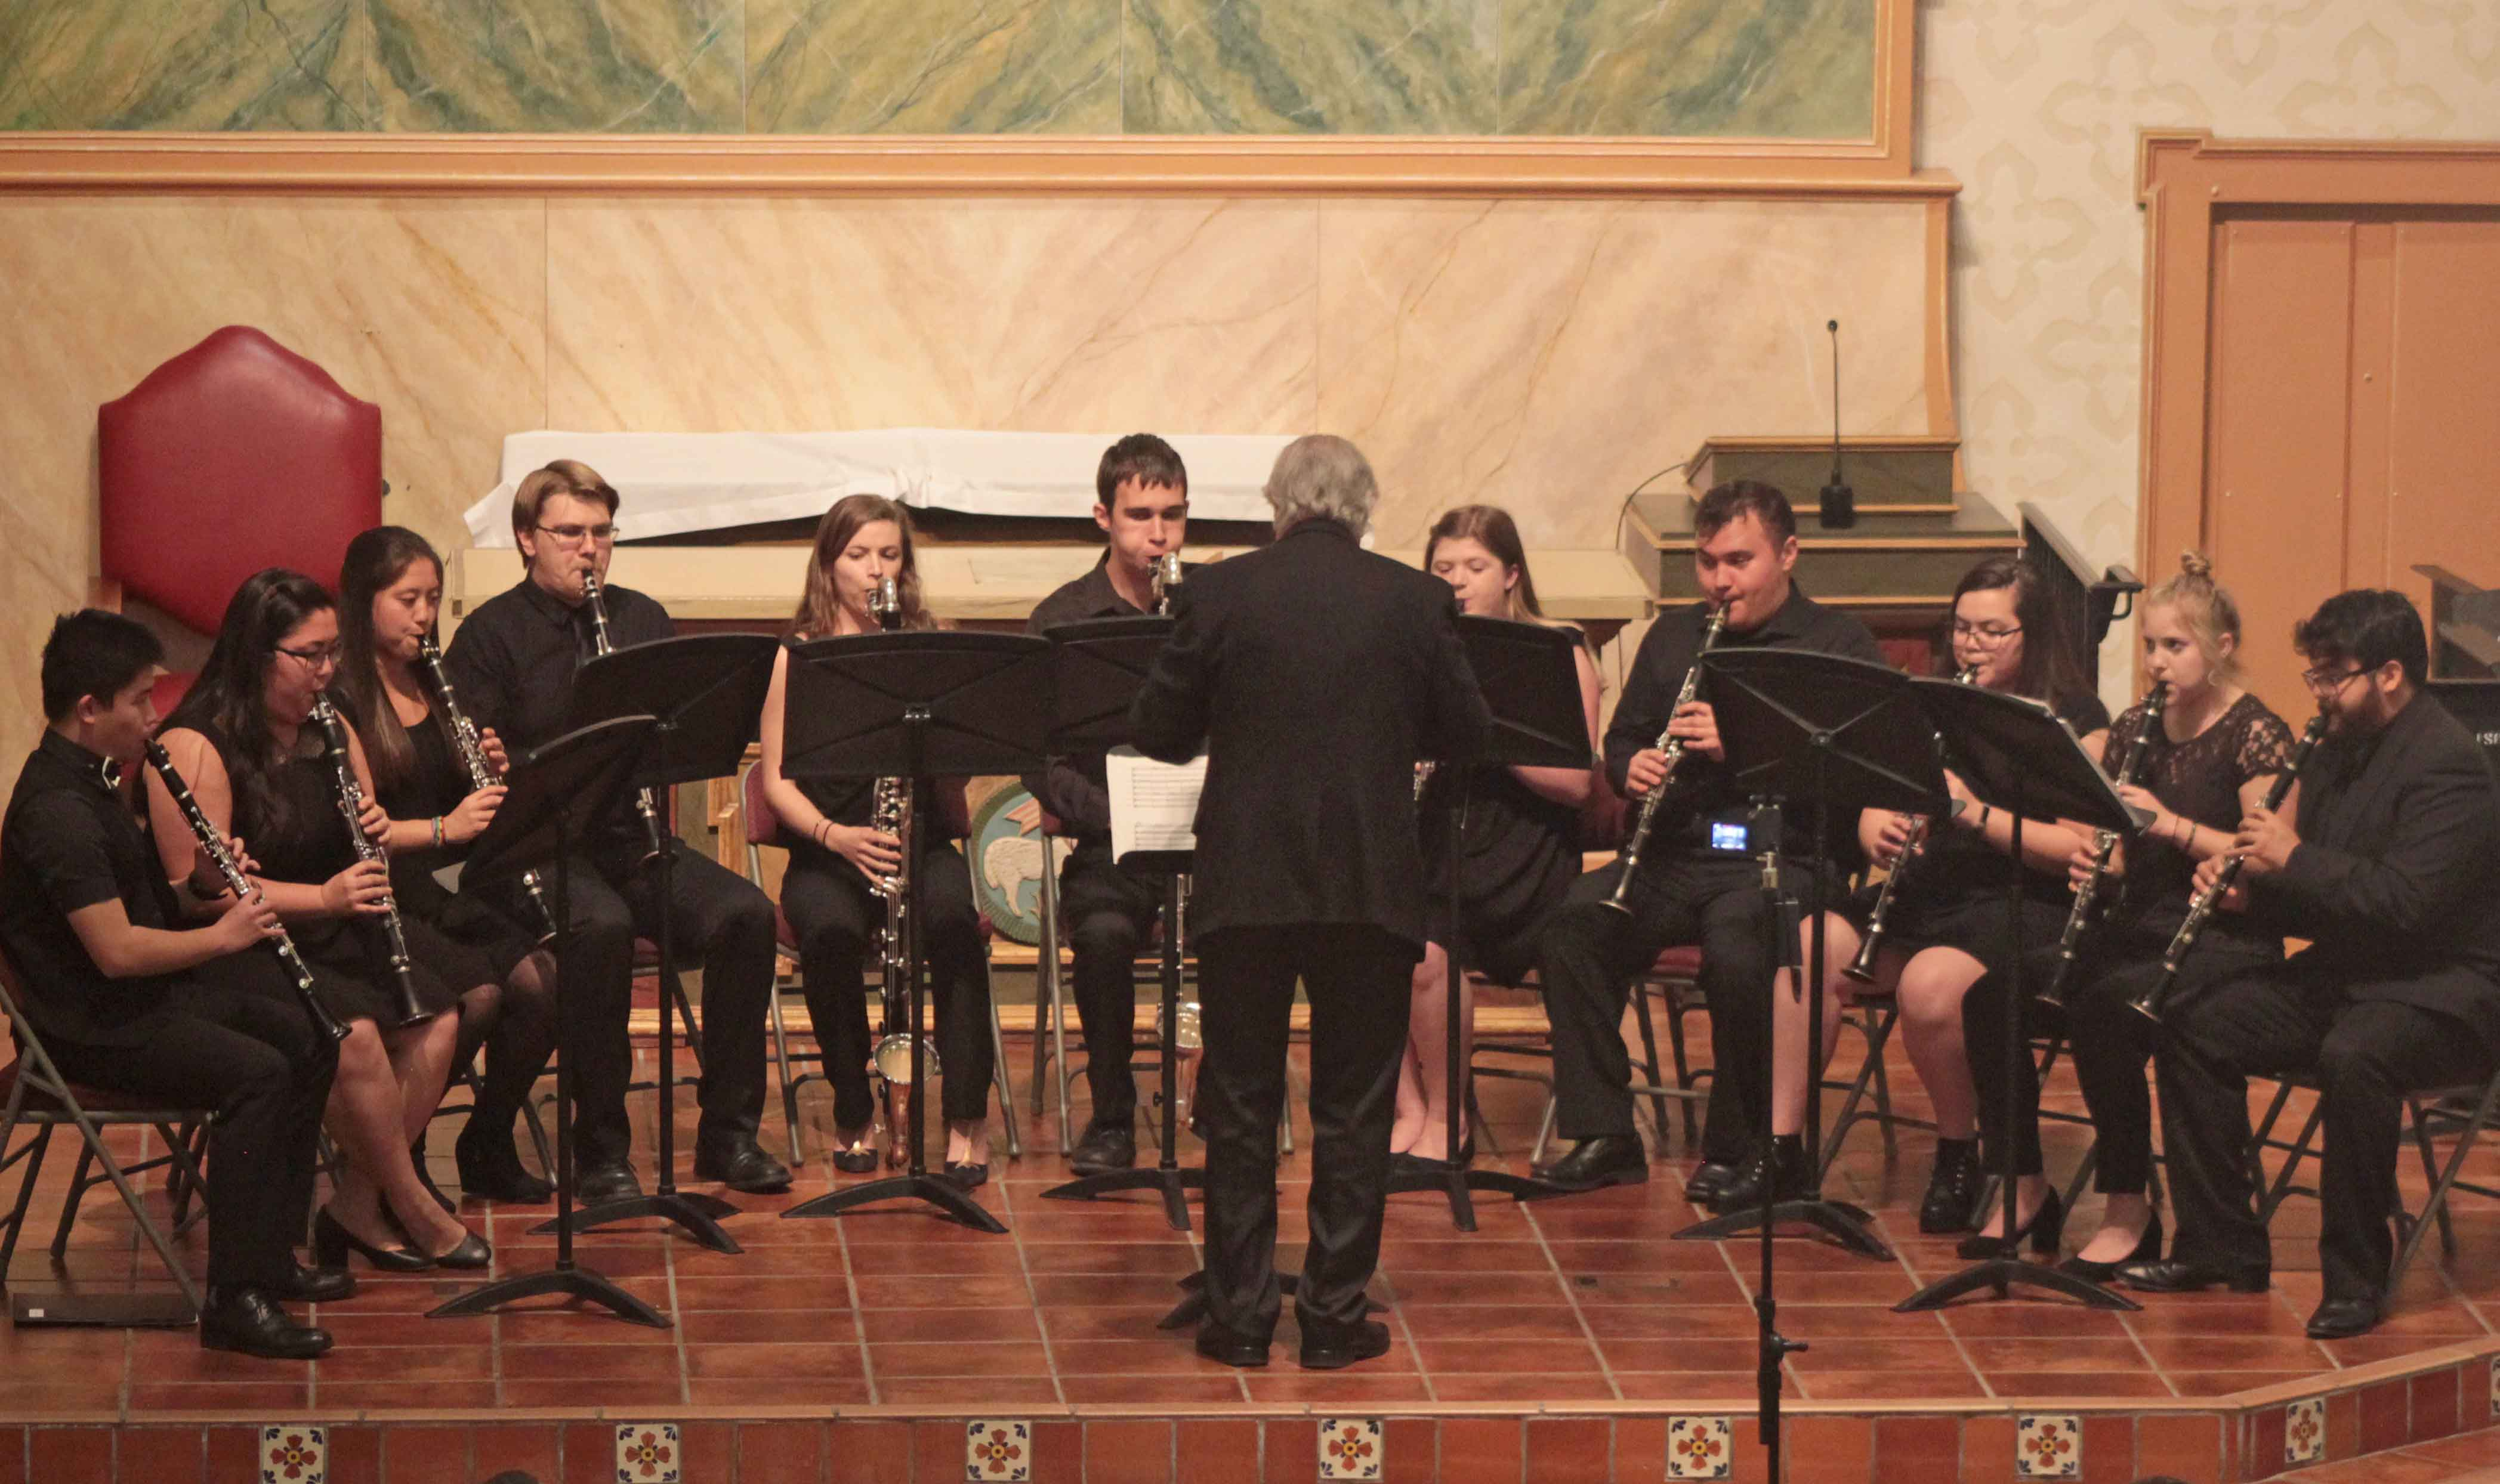 Keith Waibel conducts a Cal Poly clarinet ensemble during a concert in Mission San Luis Obispo. Waibel has organized the second annual Clarinet Festival which will take place at 6 p.m. Sunday, May 5, in Room 218 of the Davidson Music Center (No. 45) on campus.